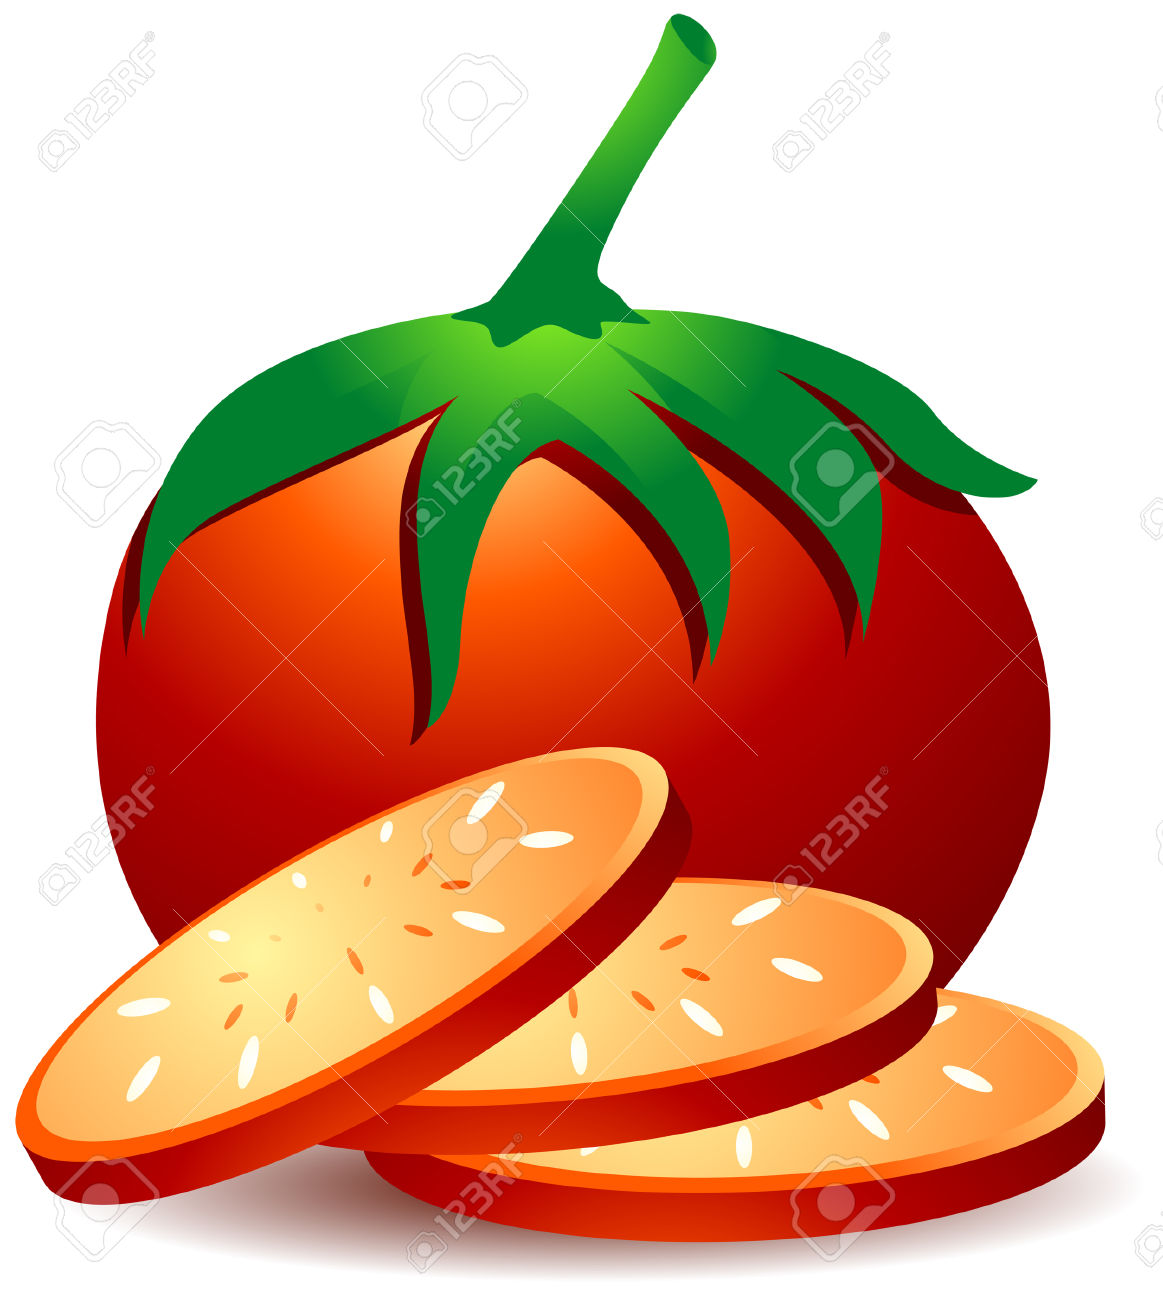 Tomatoes Illustration With Clipping Path Royalty Free Cliparts.